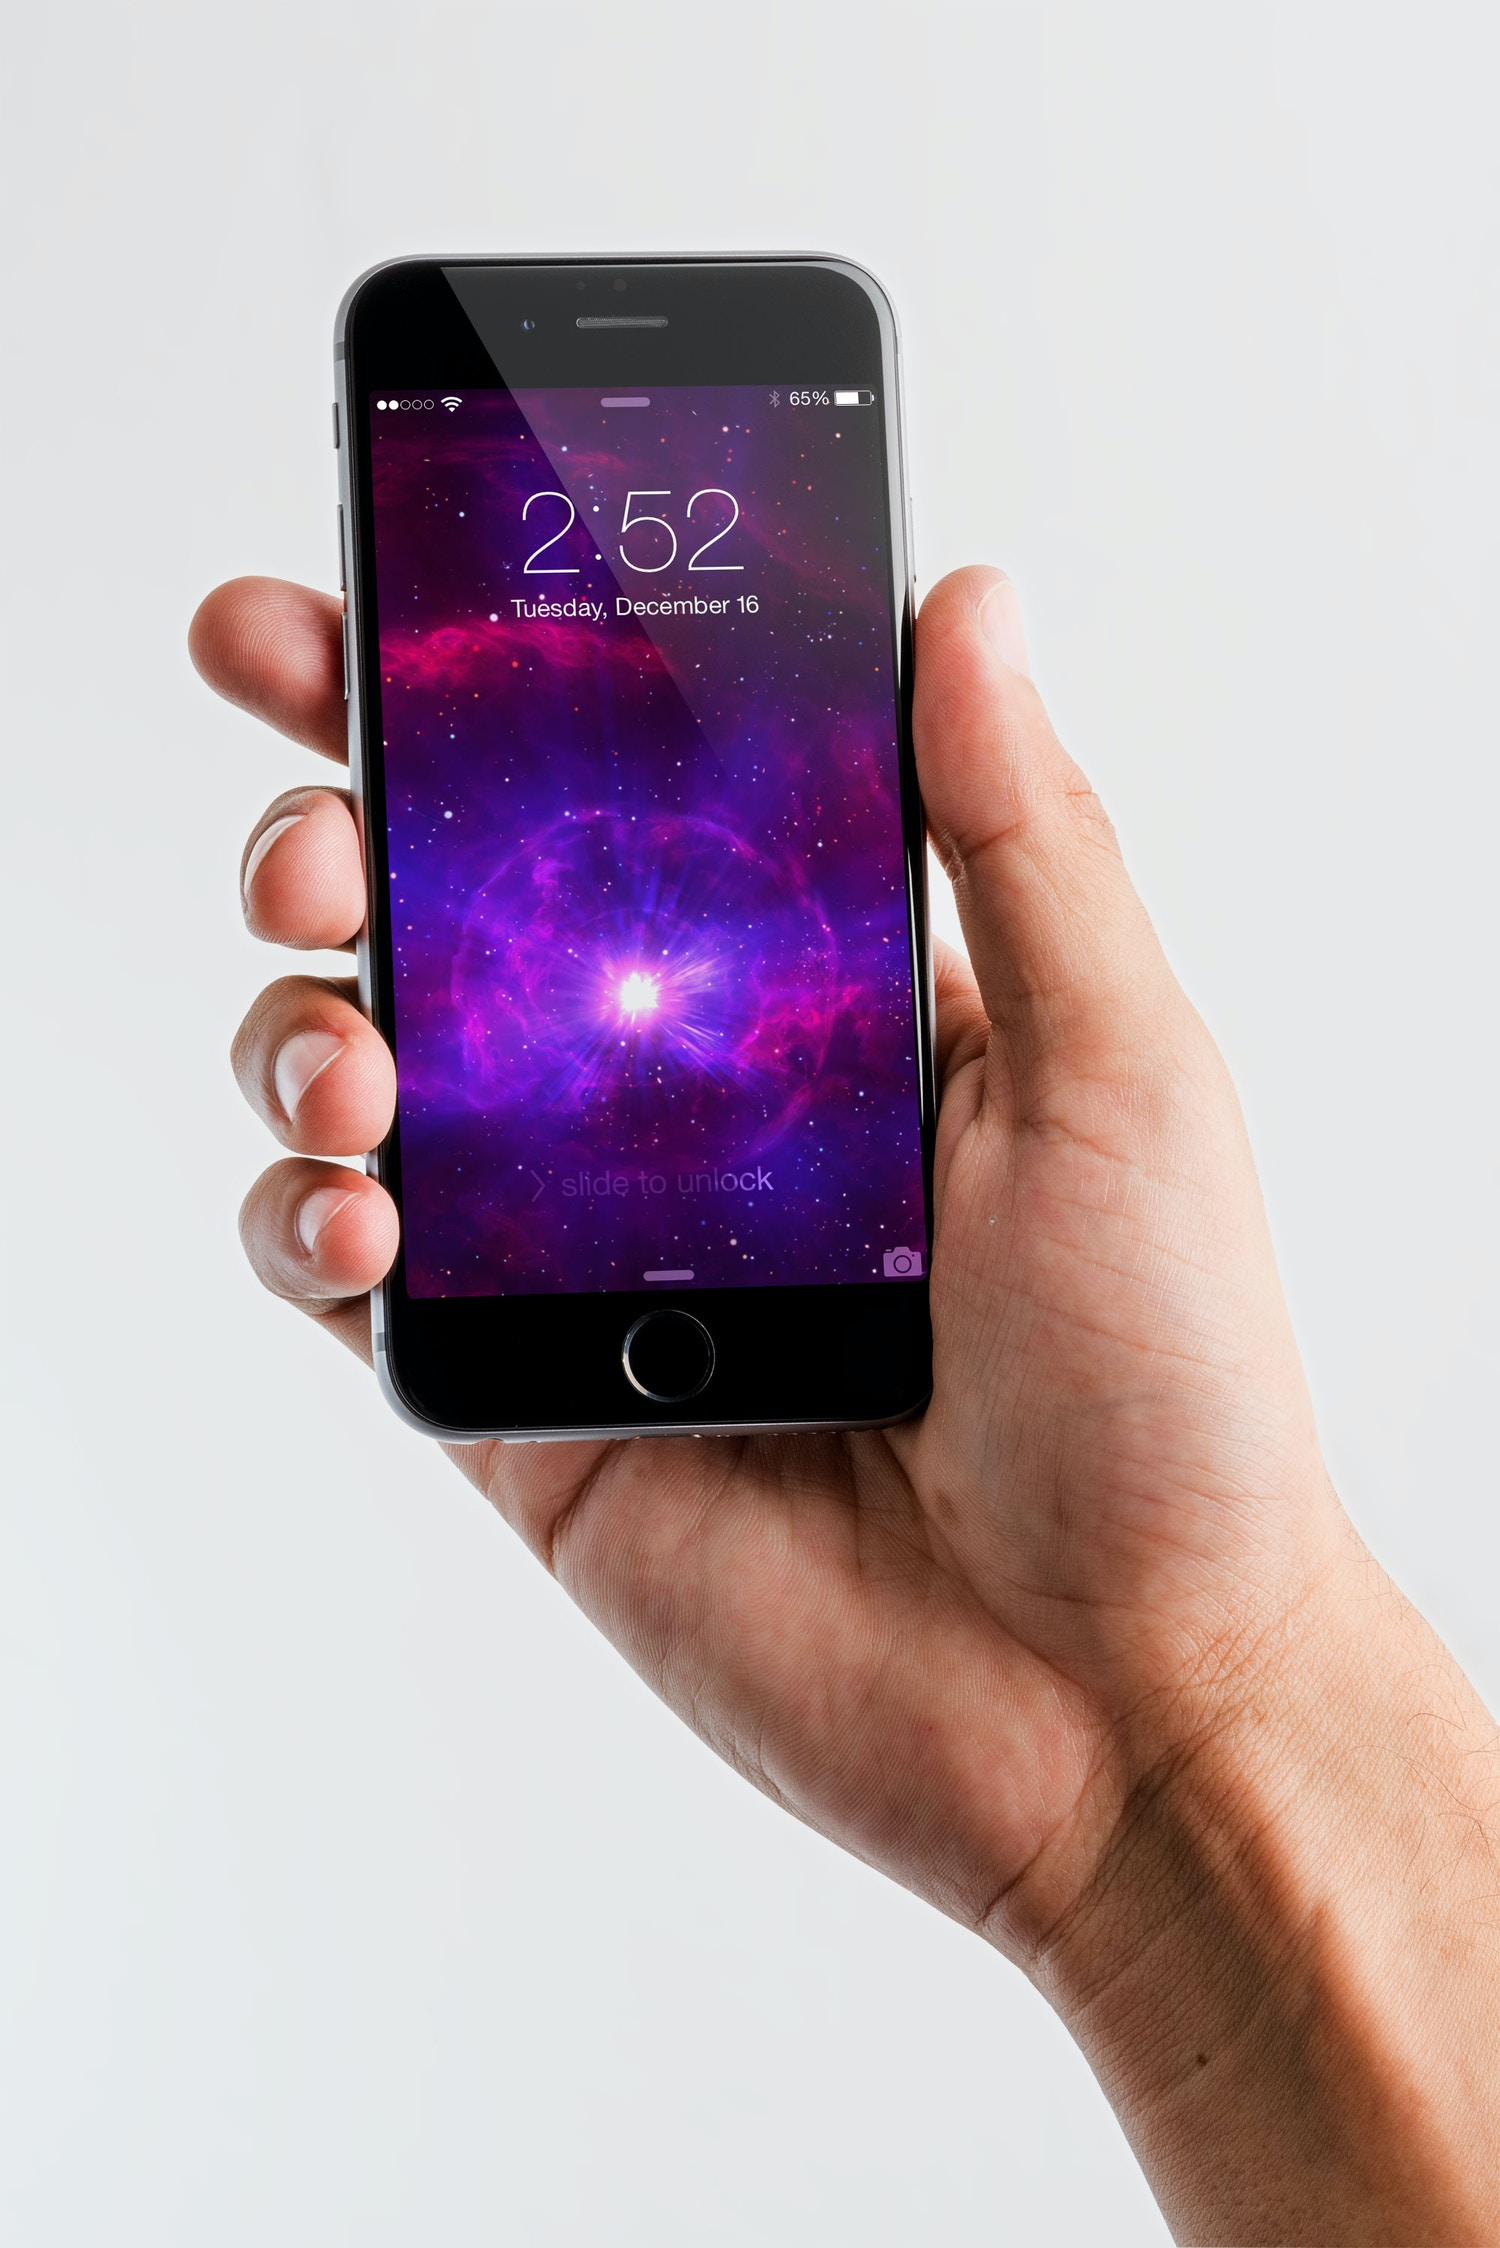 Iphone 6 Spacegray PSD Mockup 05 by Original Mockups on Original Mockups